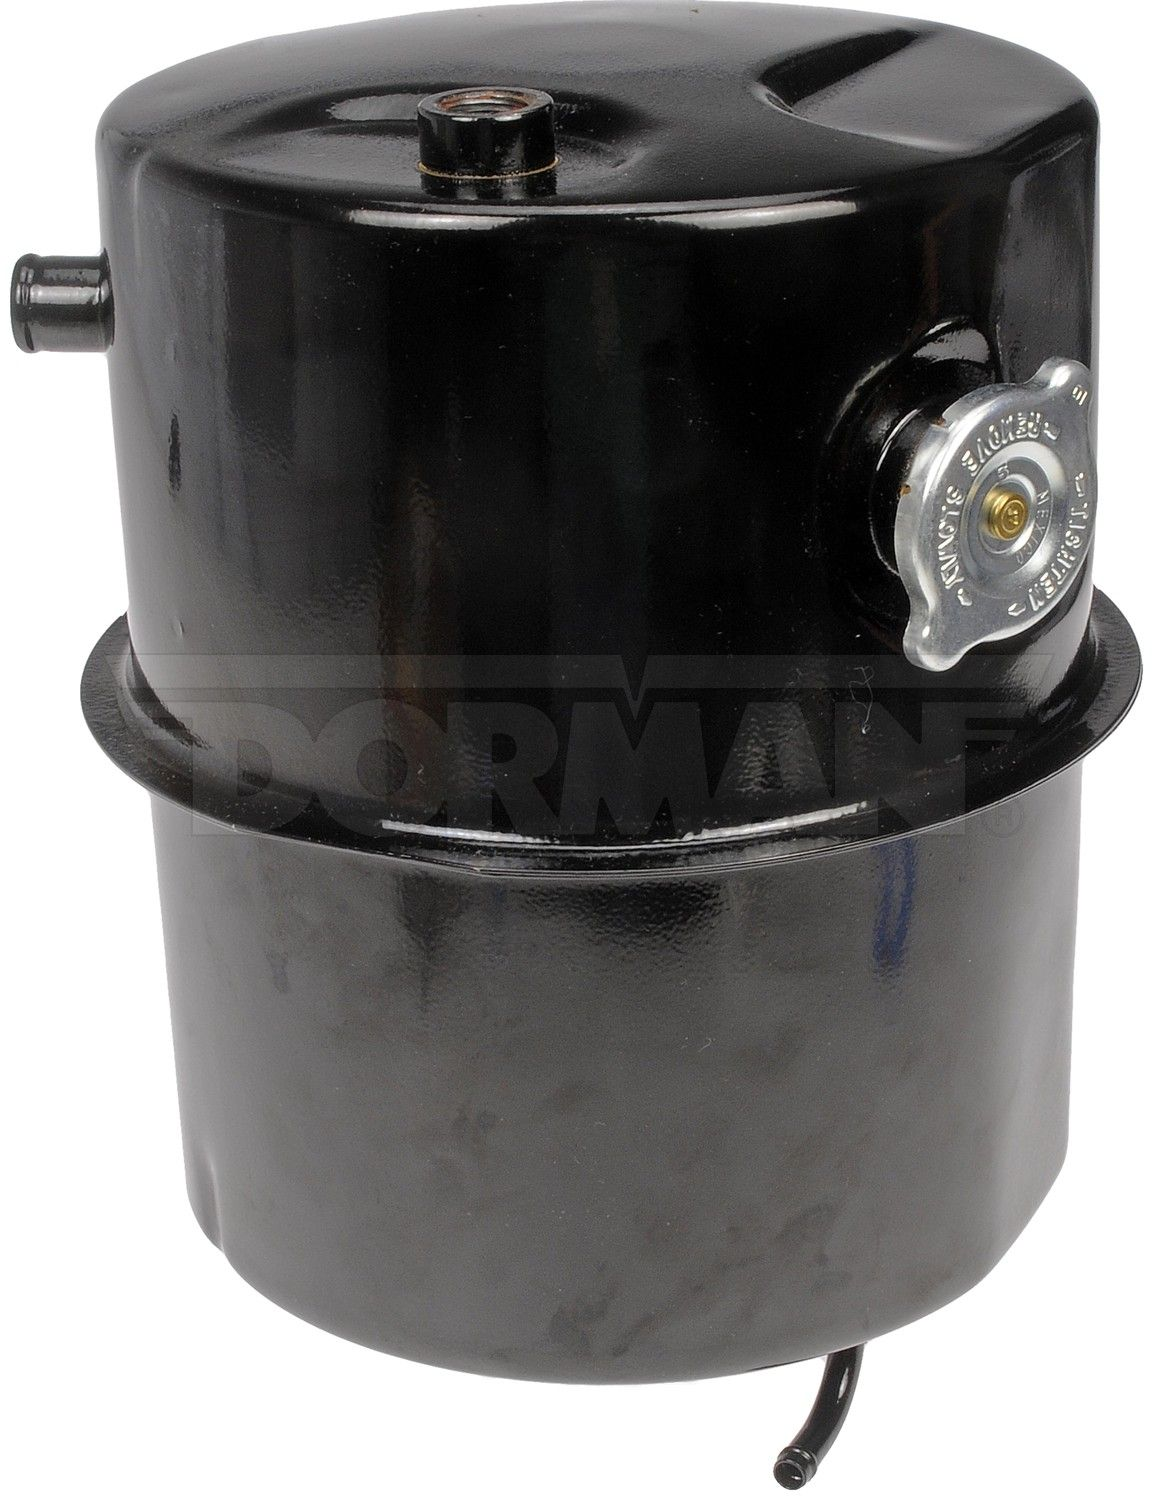 For Front 2 Ports Engine Coolant Recovery Tank Dorman 603-5103 For International